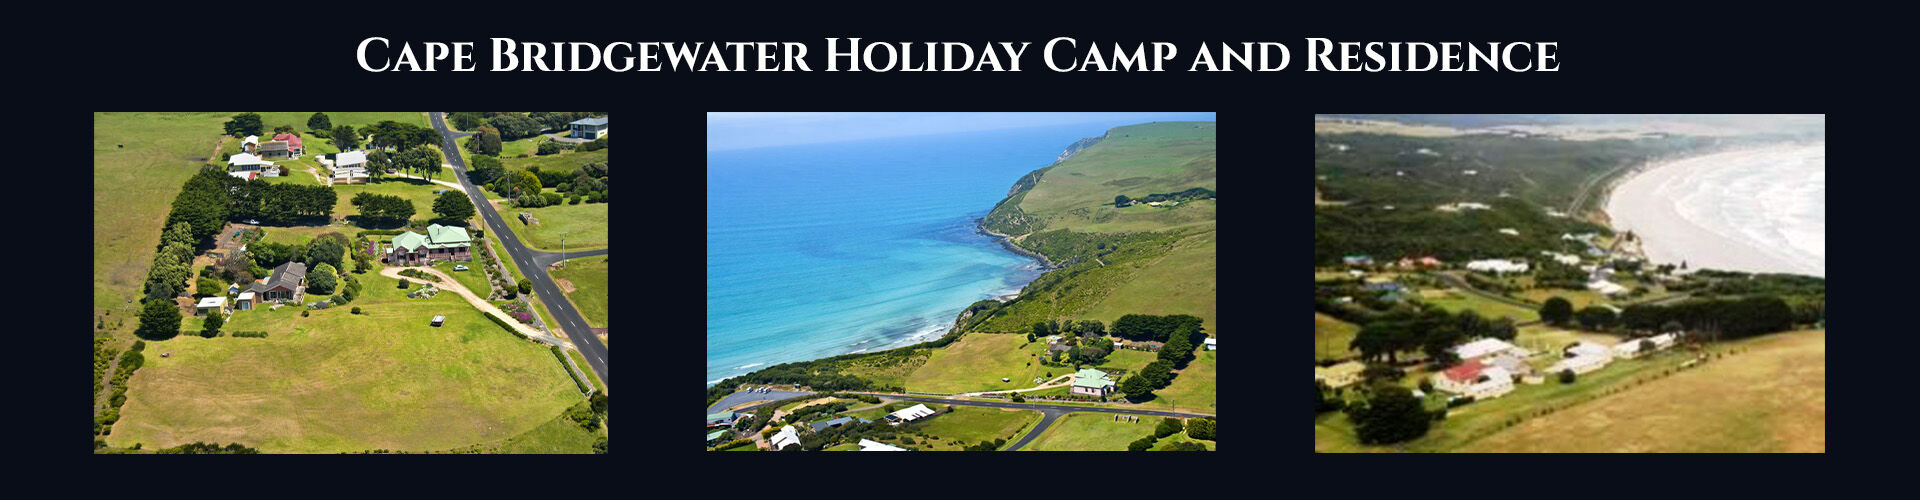 Absent Justice -  Cape Bridgewater Holiday Camp and Residence